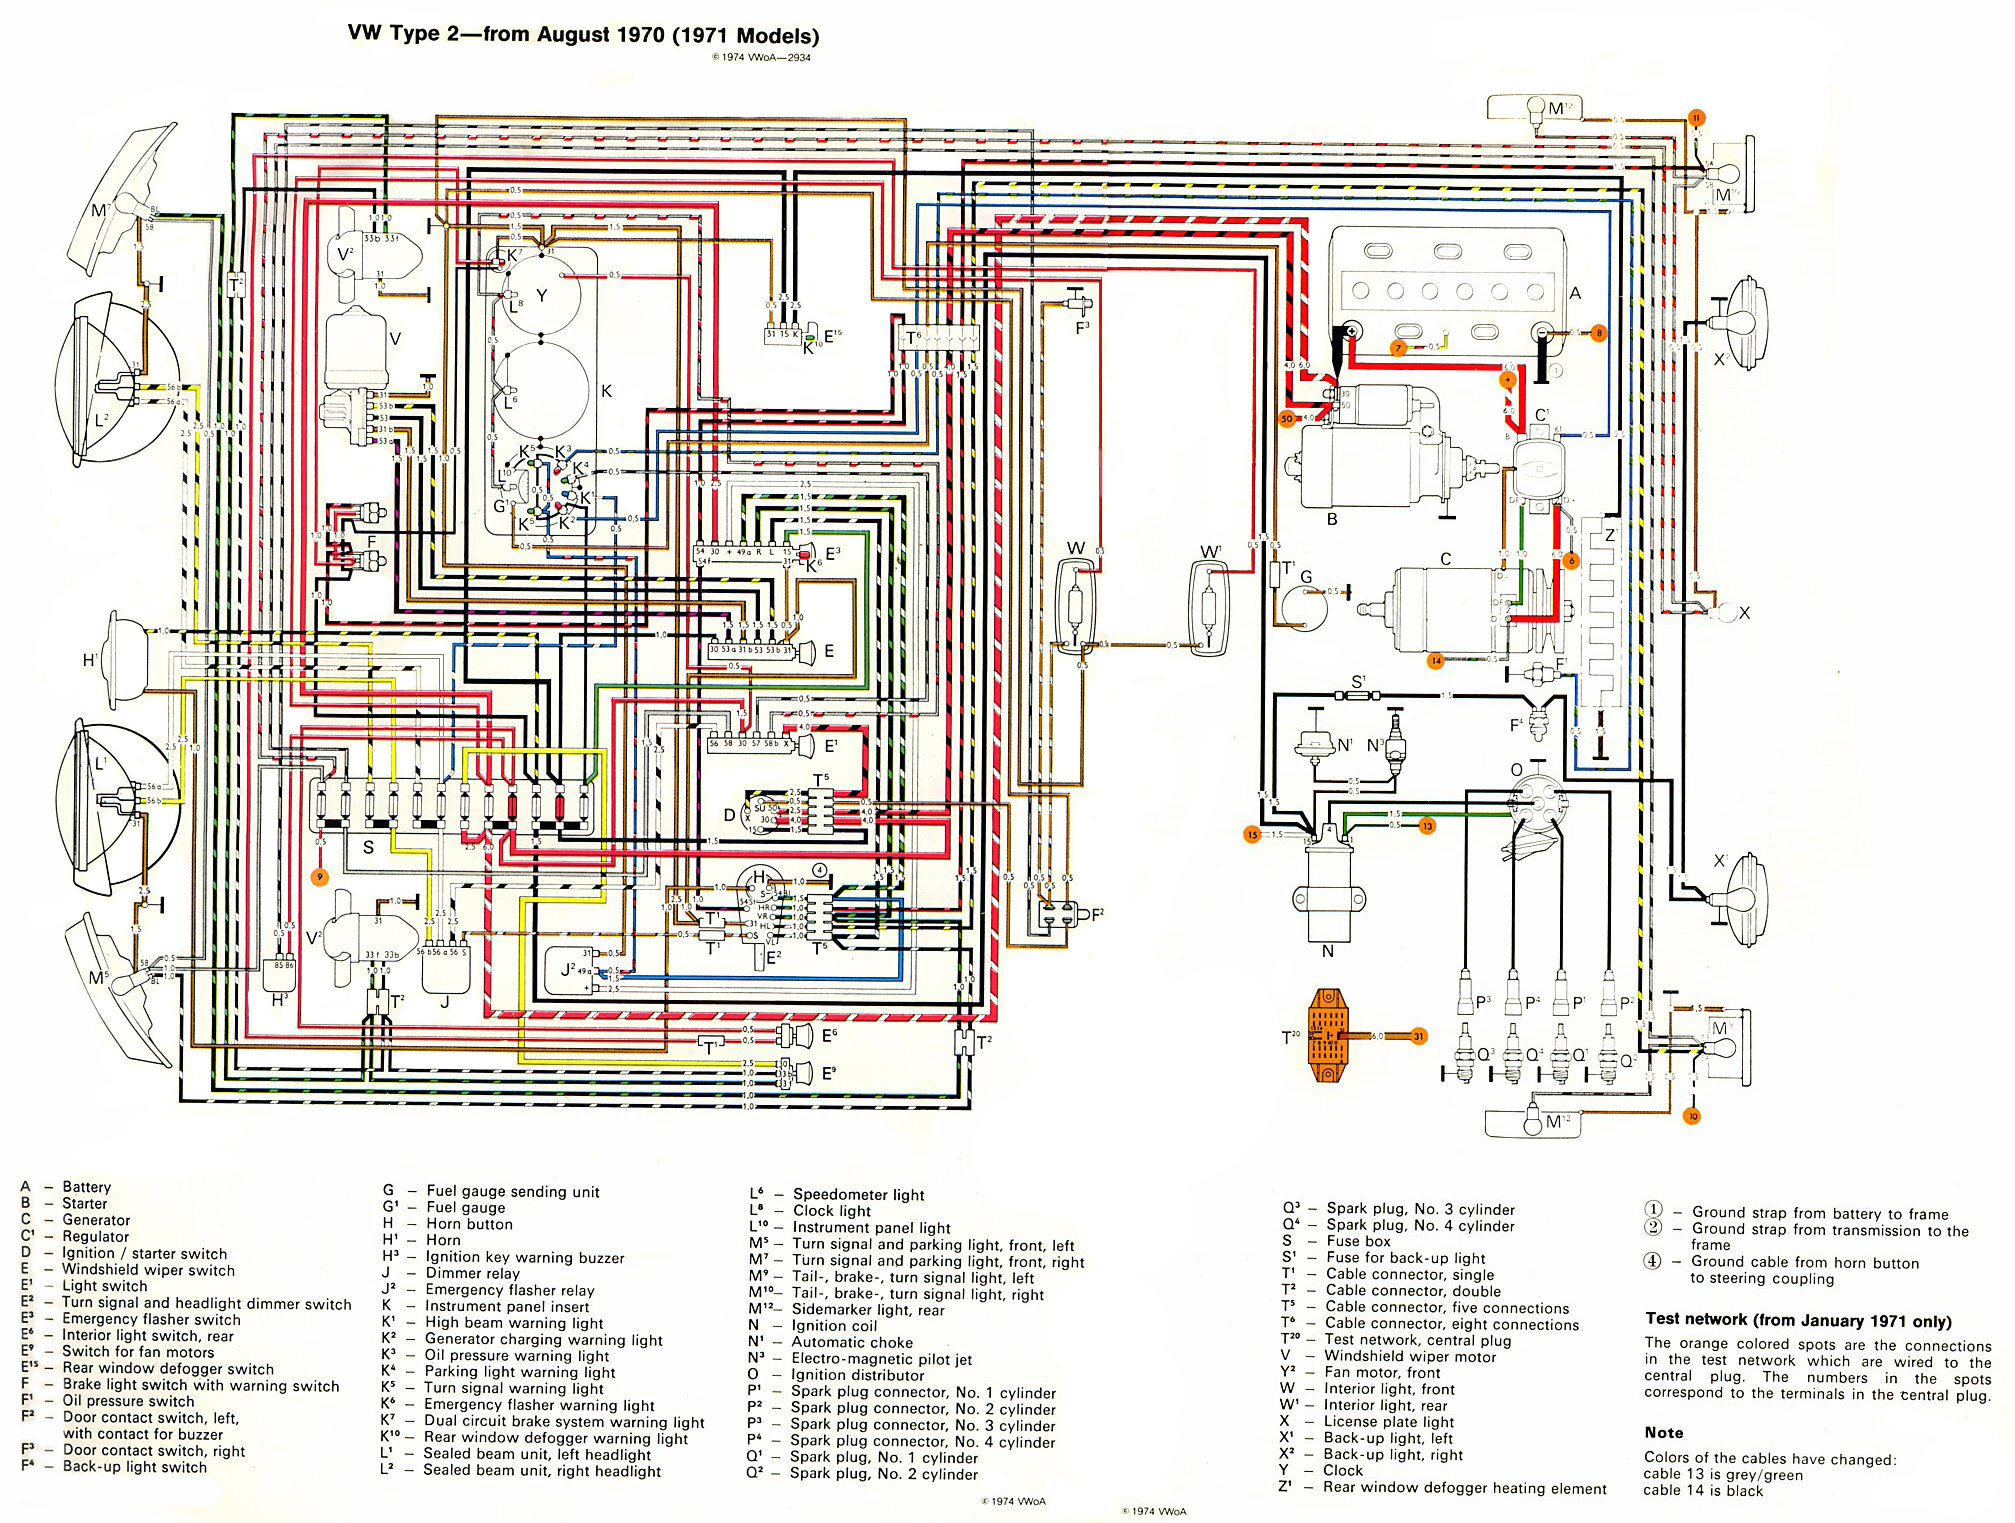 baybus_71_fixed thesamba com type 2 wiring diagrams Electrical Wiring Diagrams at eliteediting.co